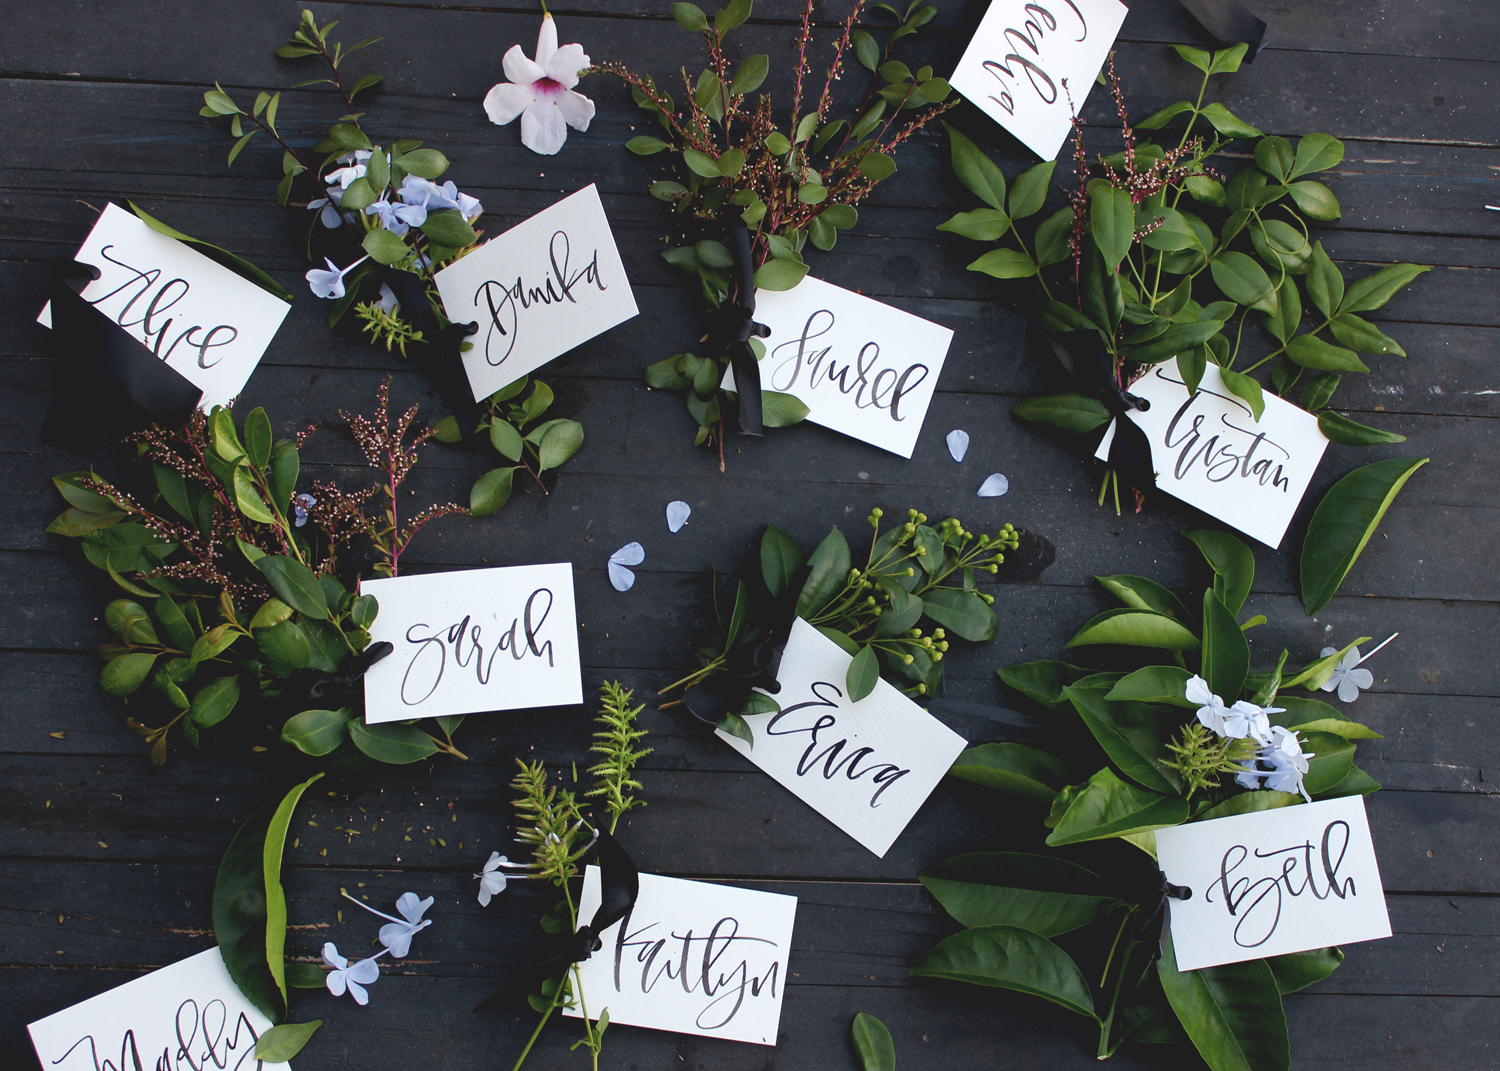 Wildflower Bundles | A Fabulous Fete